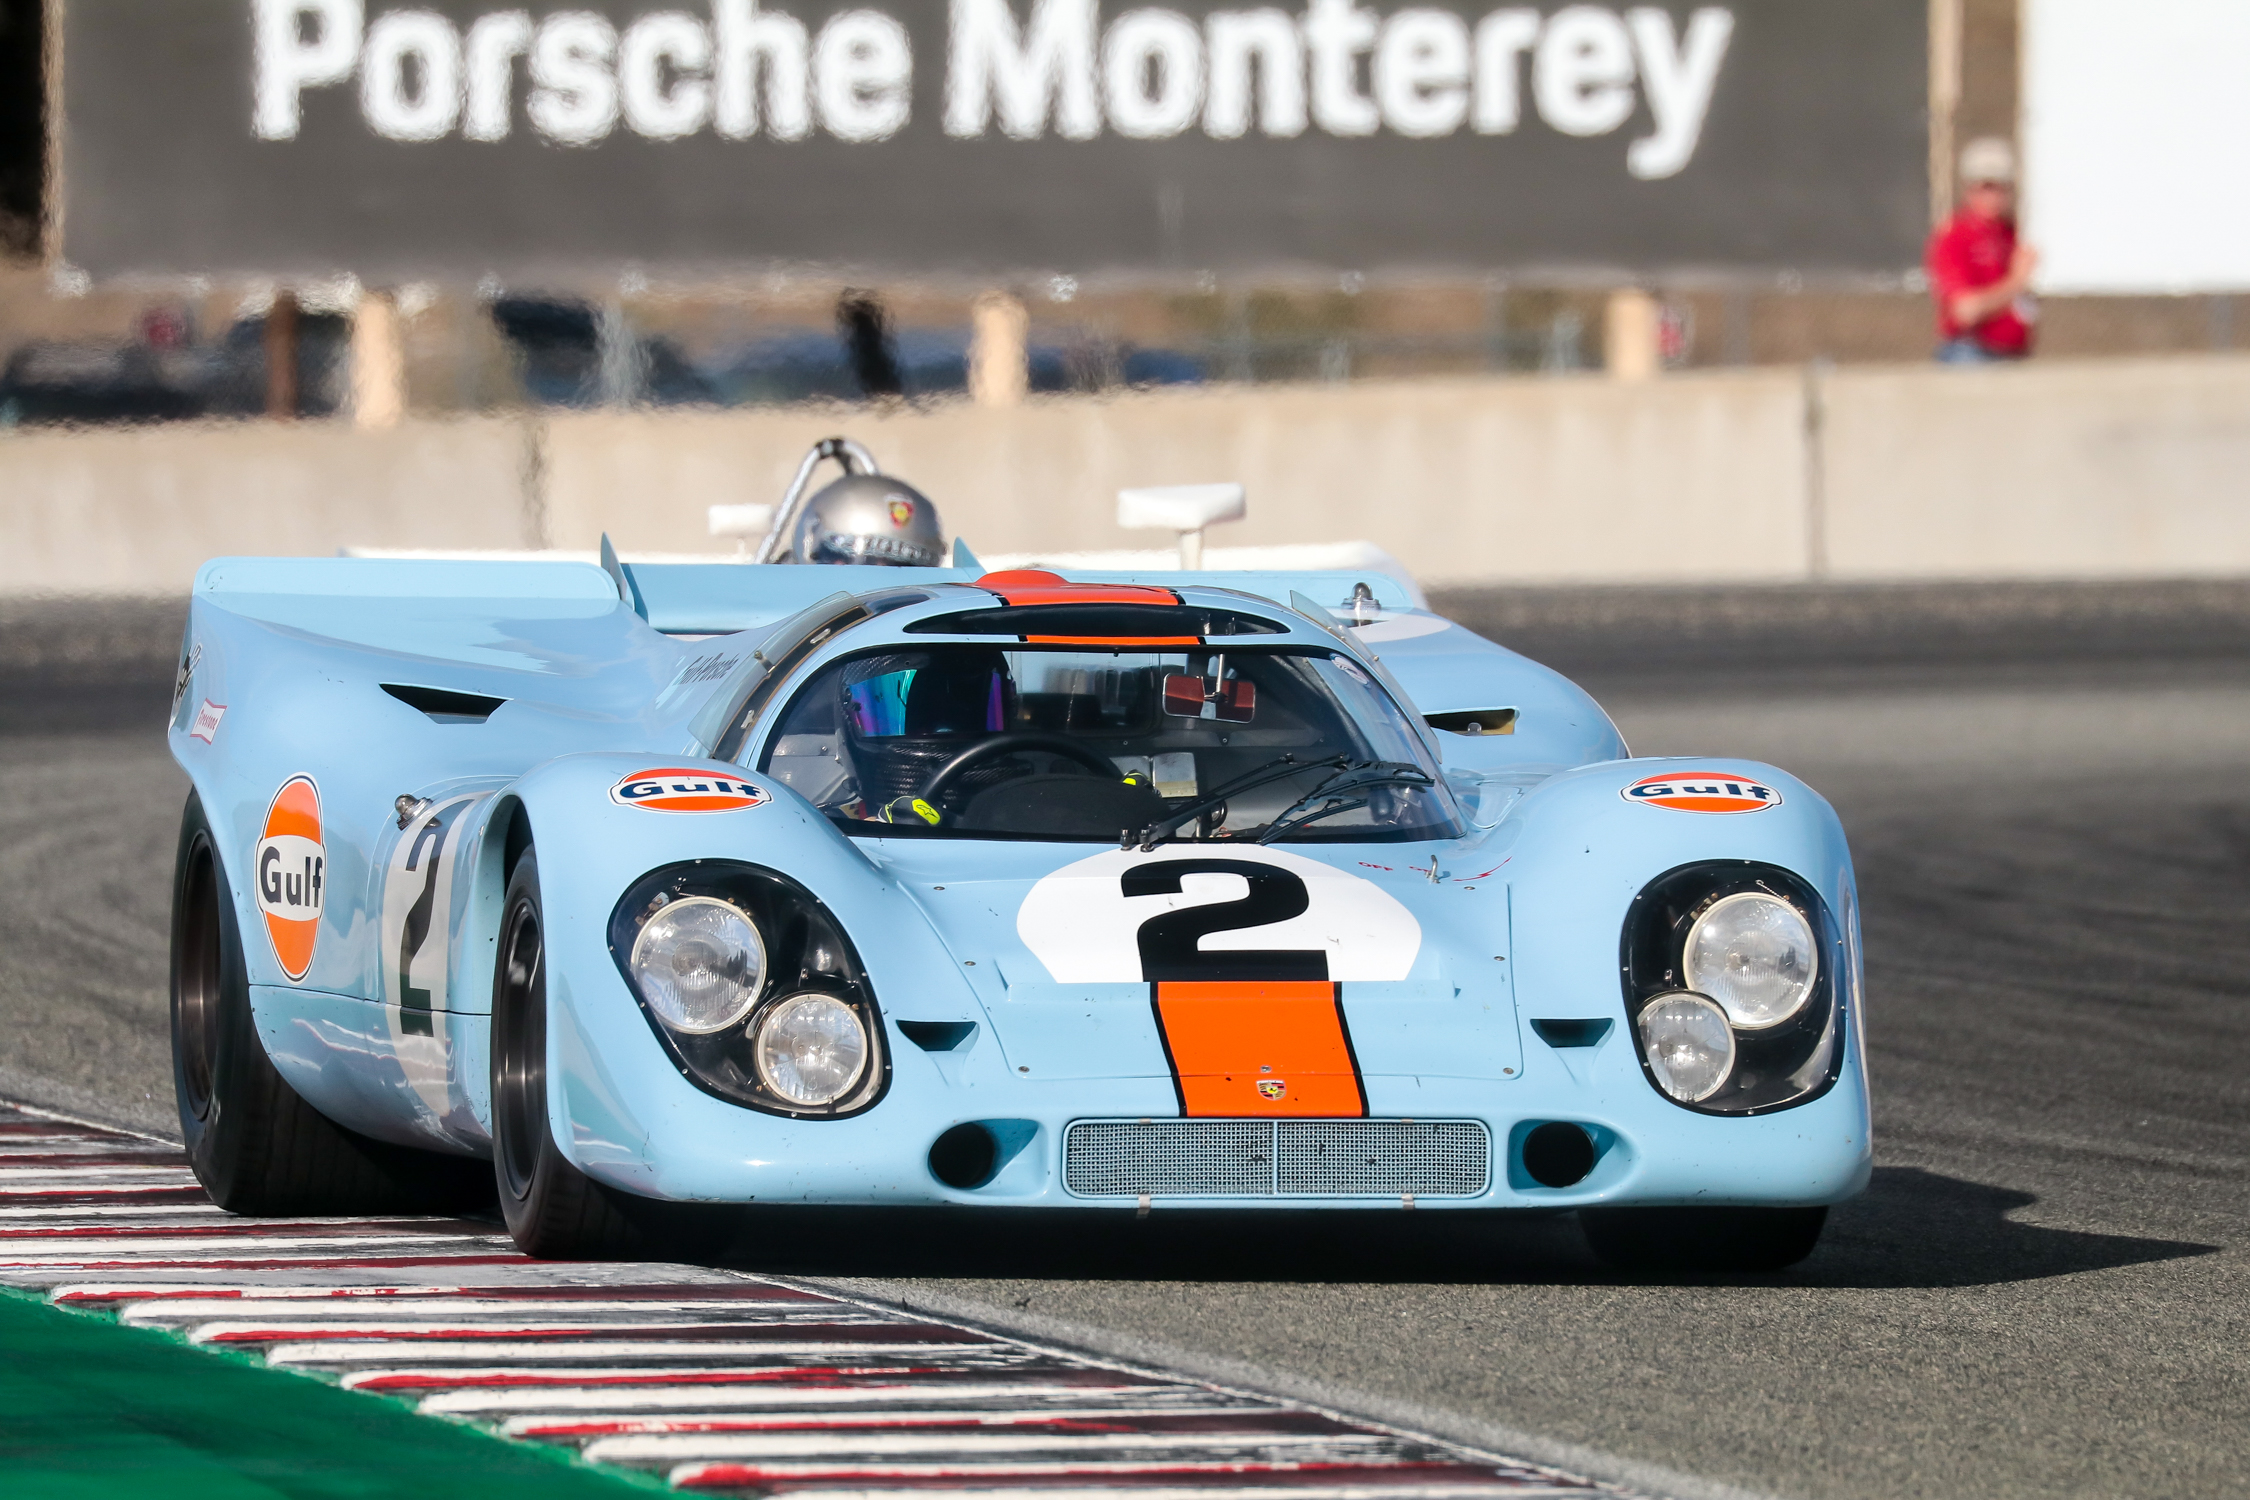 Bruce Canepa's 917, Chassis 917-015 that won the 1970 24 Hours of Daytona.